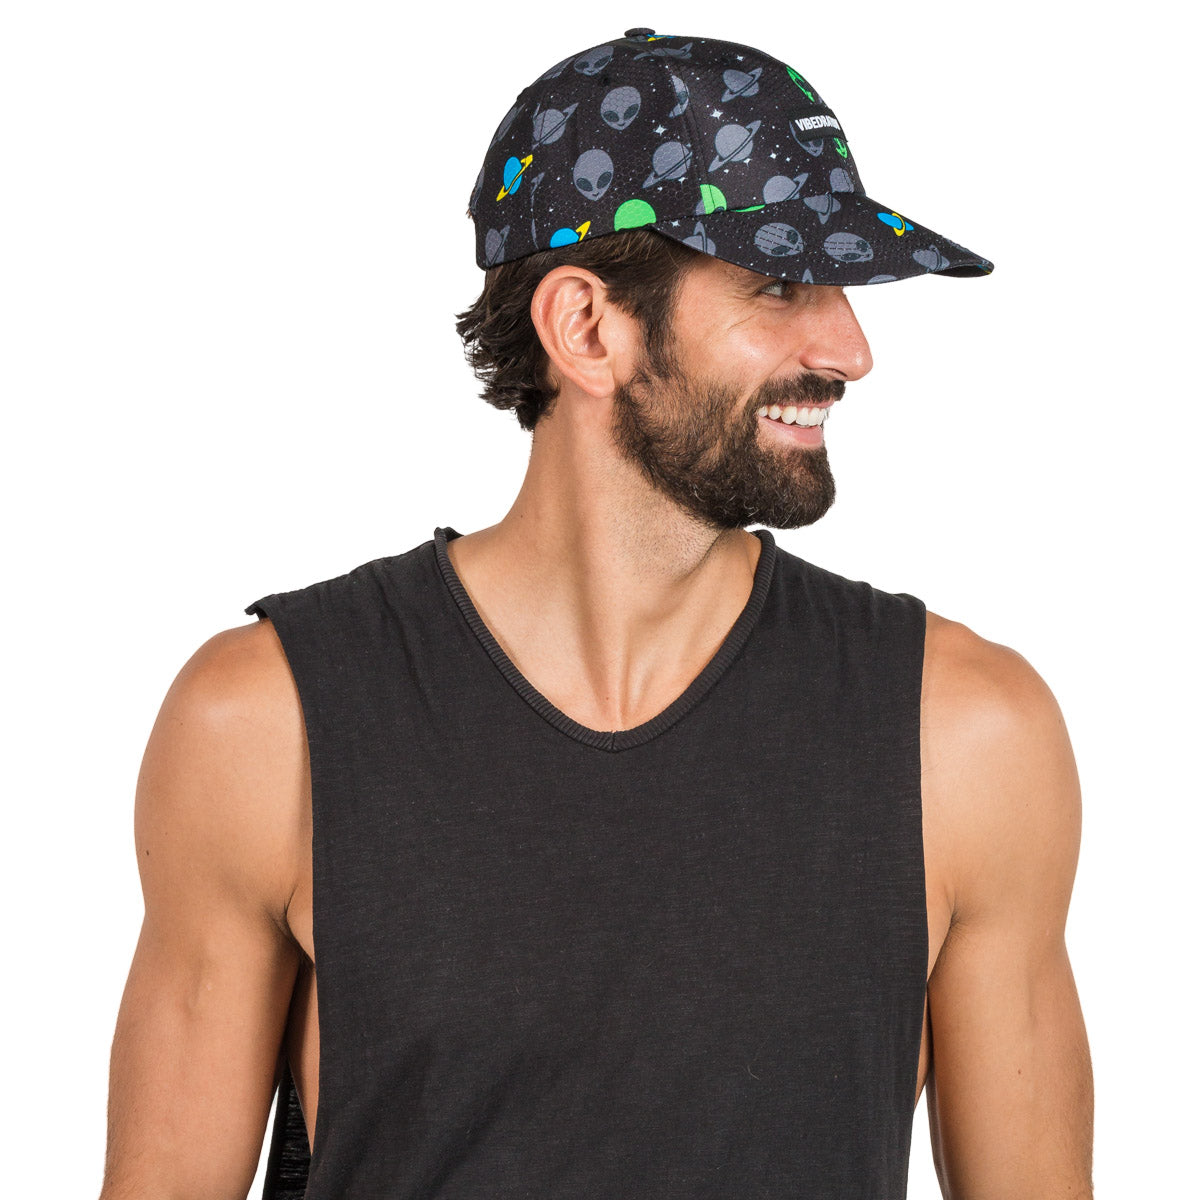 Adjustable Alien Printed Hat for Festivals